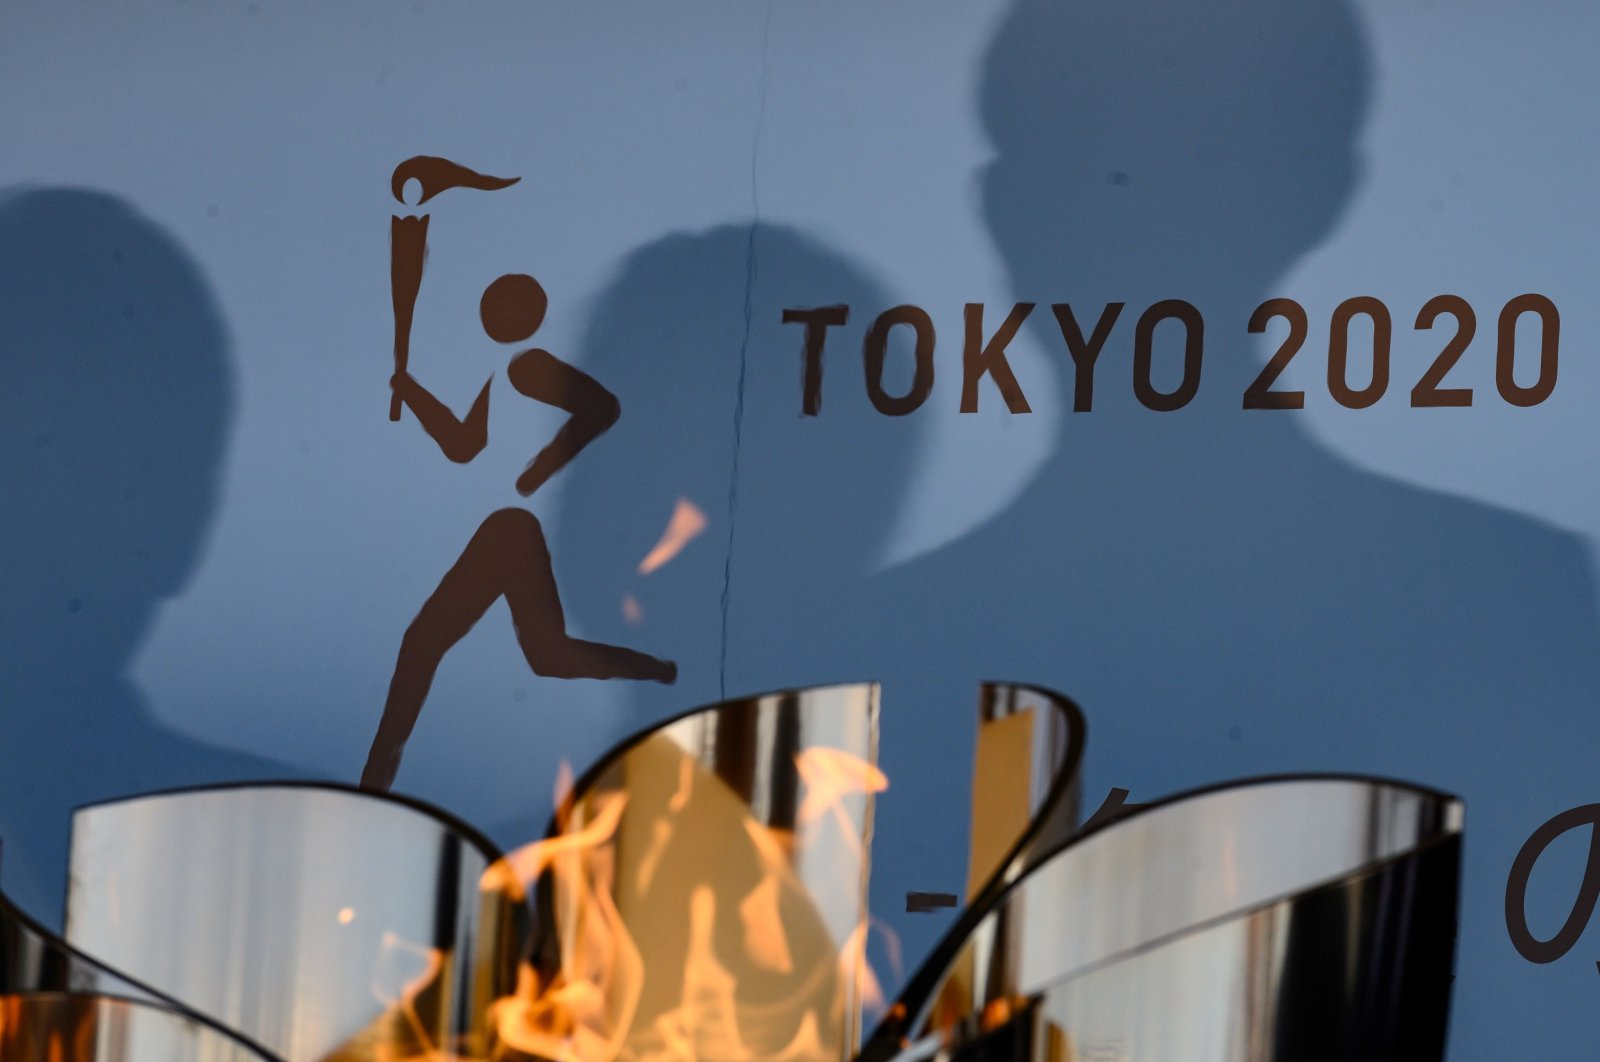 The logo for the Tokyo 2020 torch relay is pictured as the Olympic flame goes on display at the Aquamarine Fukushima aquarium in Iwaki in Fukushima prefecture, Japan, Wednesday, March 25, 2020. (AFP Photo)